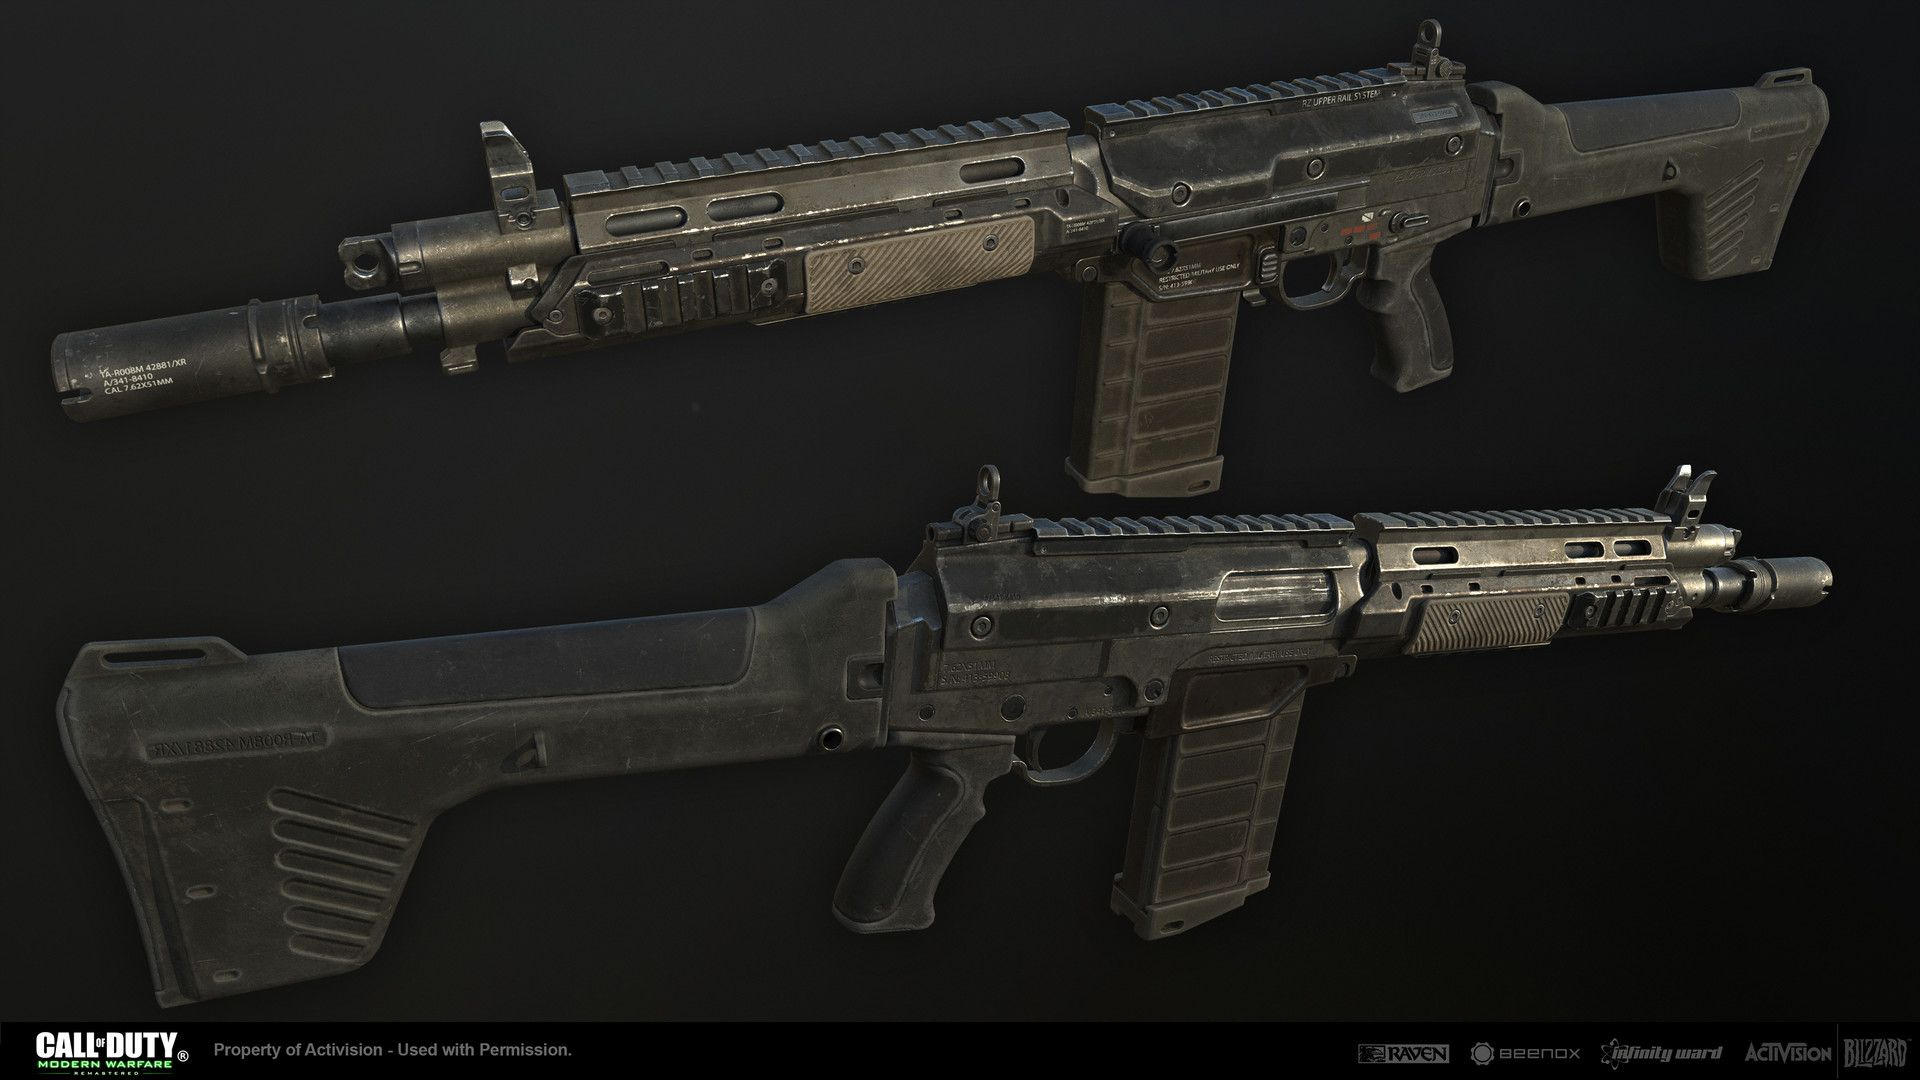 Call of duty modern warfare 2 gun - The Xm Lar Is A Fictional Light Automatic Rifle Made As A Post Launch Weapon For Call Of Duty Modern Warfare Remastered